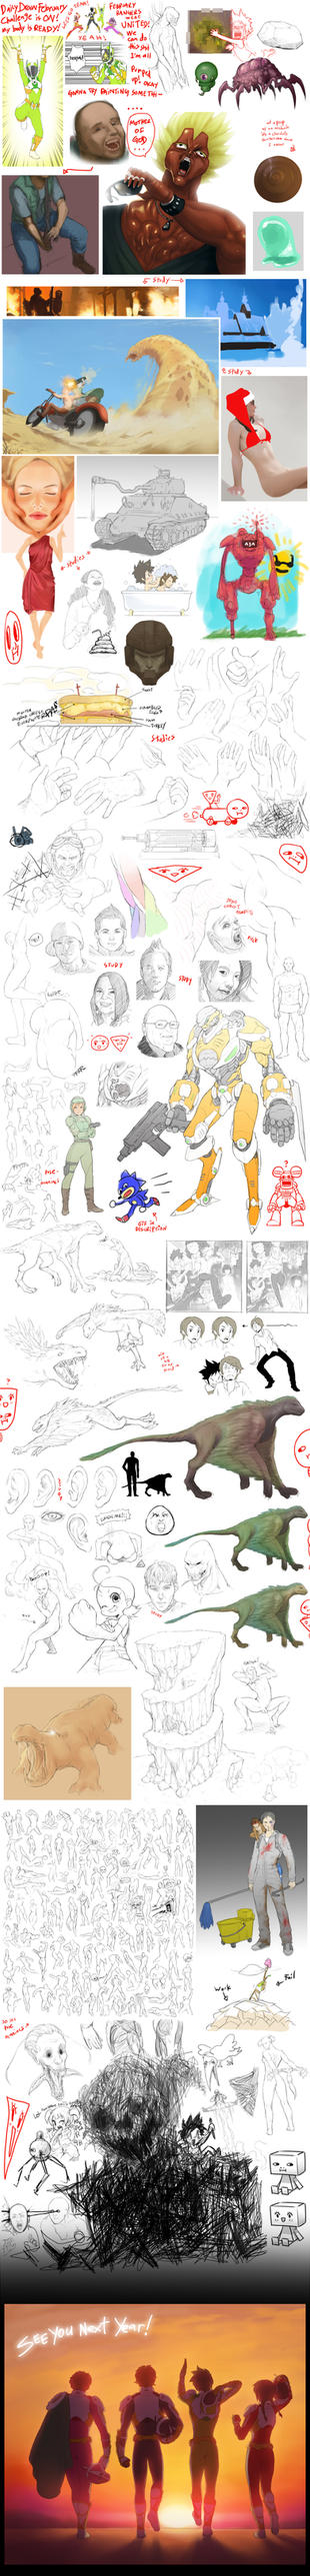 Daily Draw Feb 2012 by yanoodle